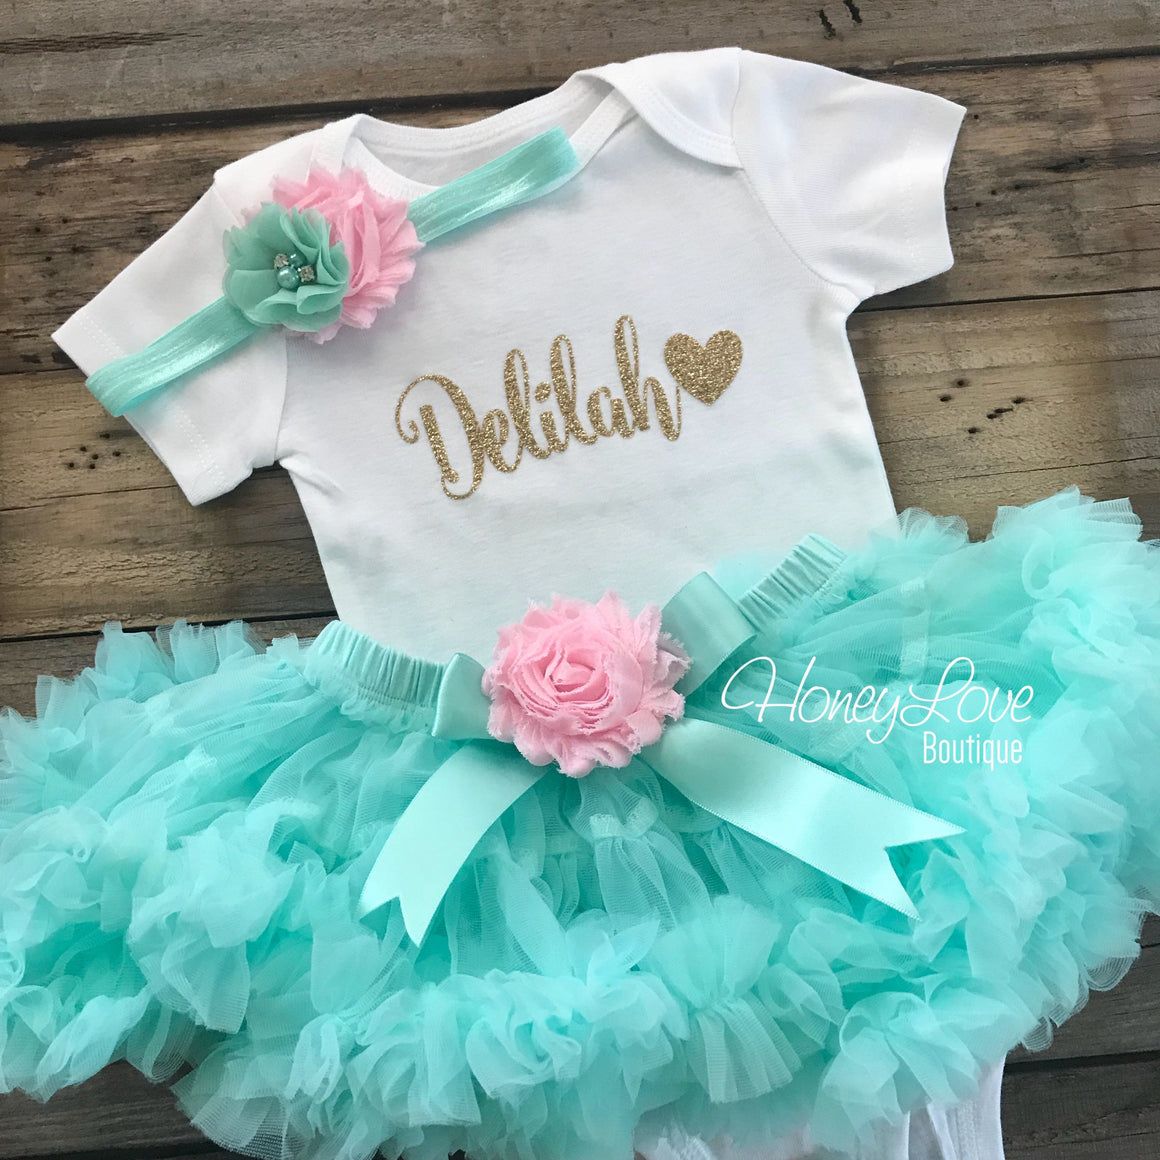 PERSONALIZED Mint/Aqua and Gold Glitter - Light Pink shabby flower embellished pettiskirt - HoneyLoveBoutique